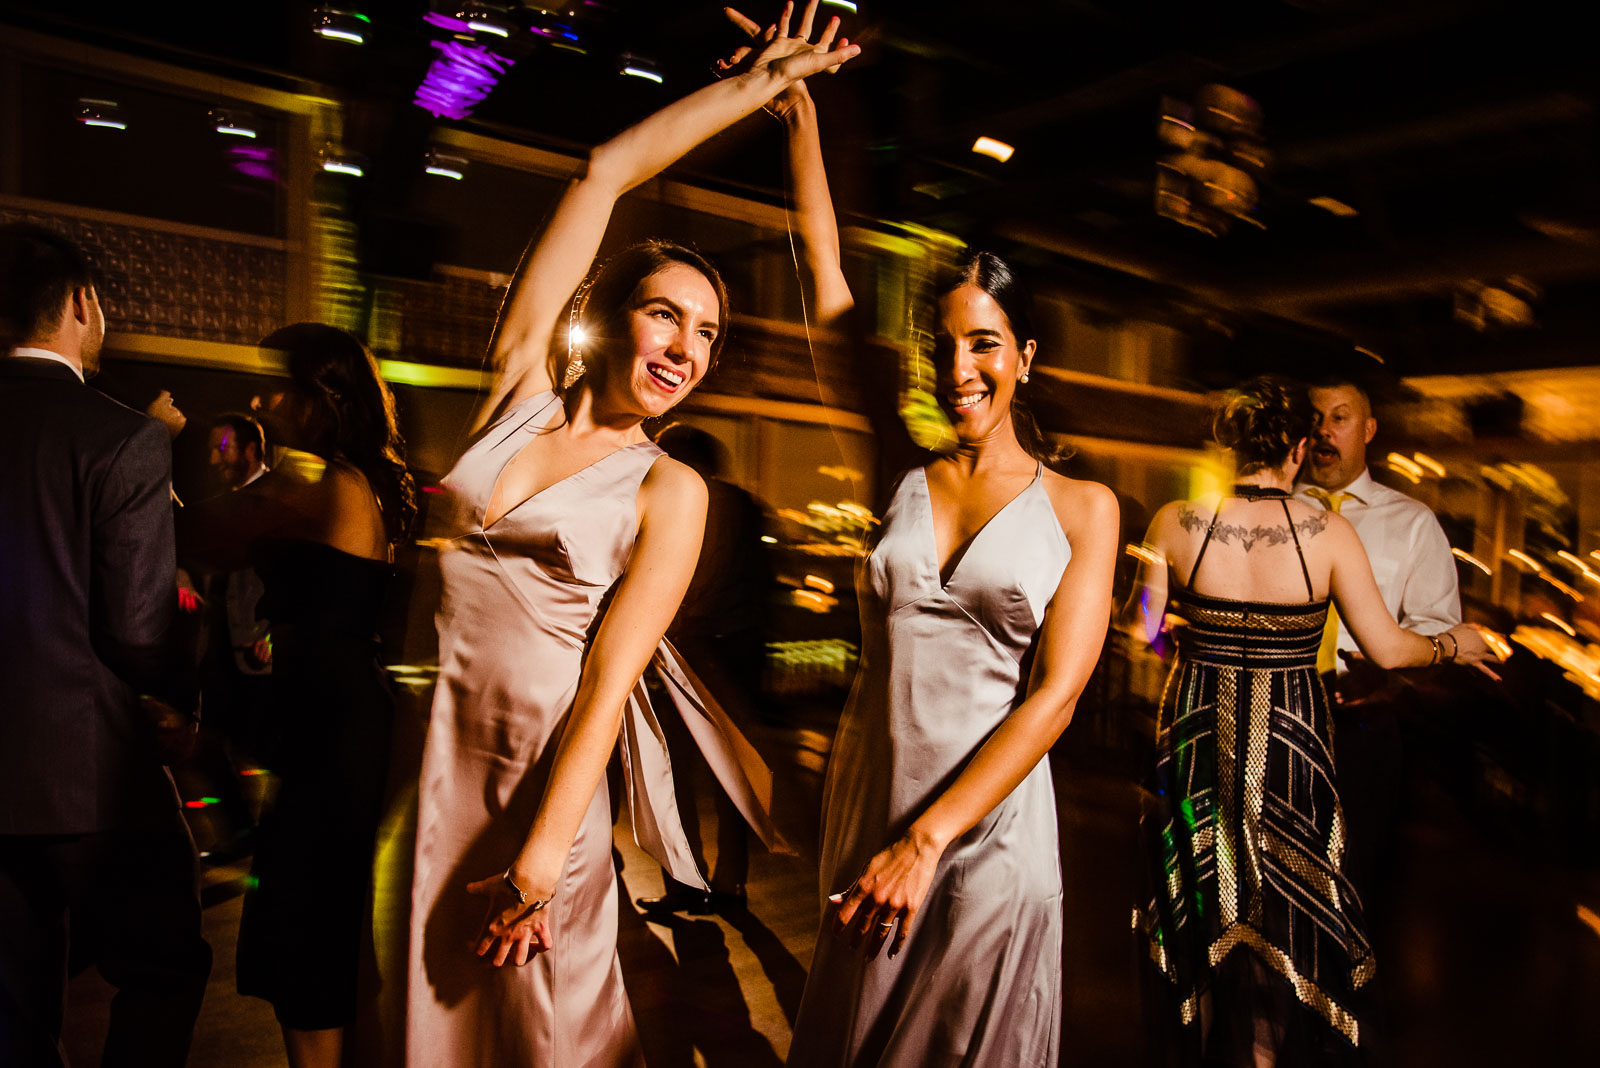 Two bridesmaids dance